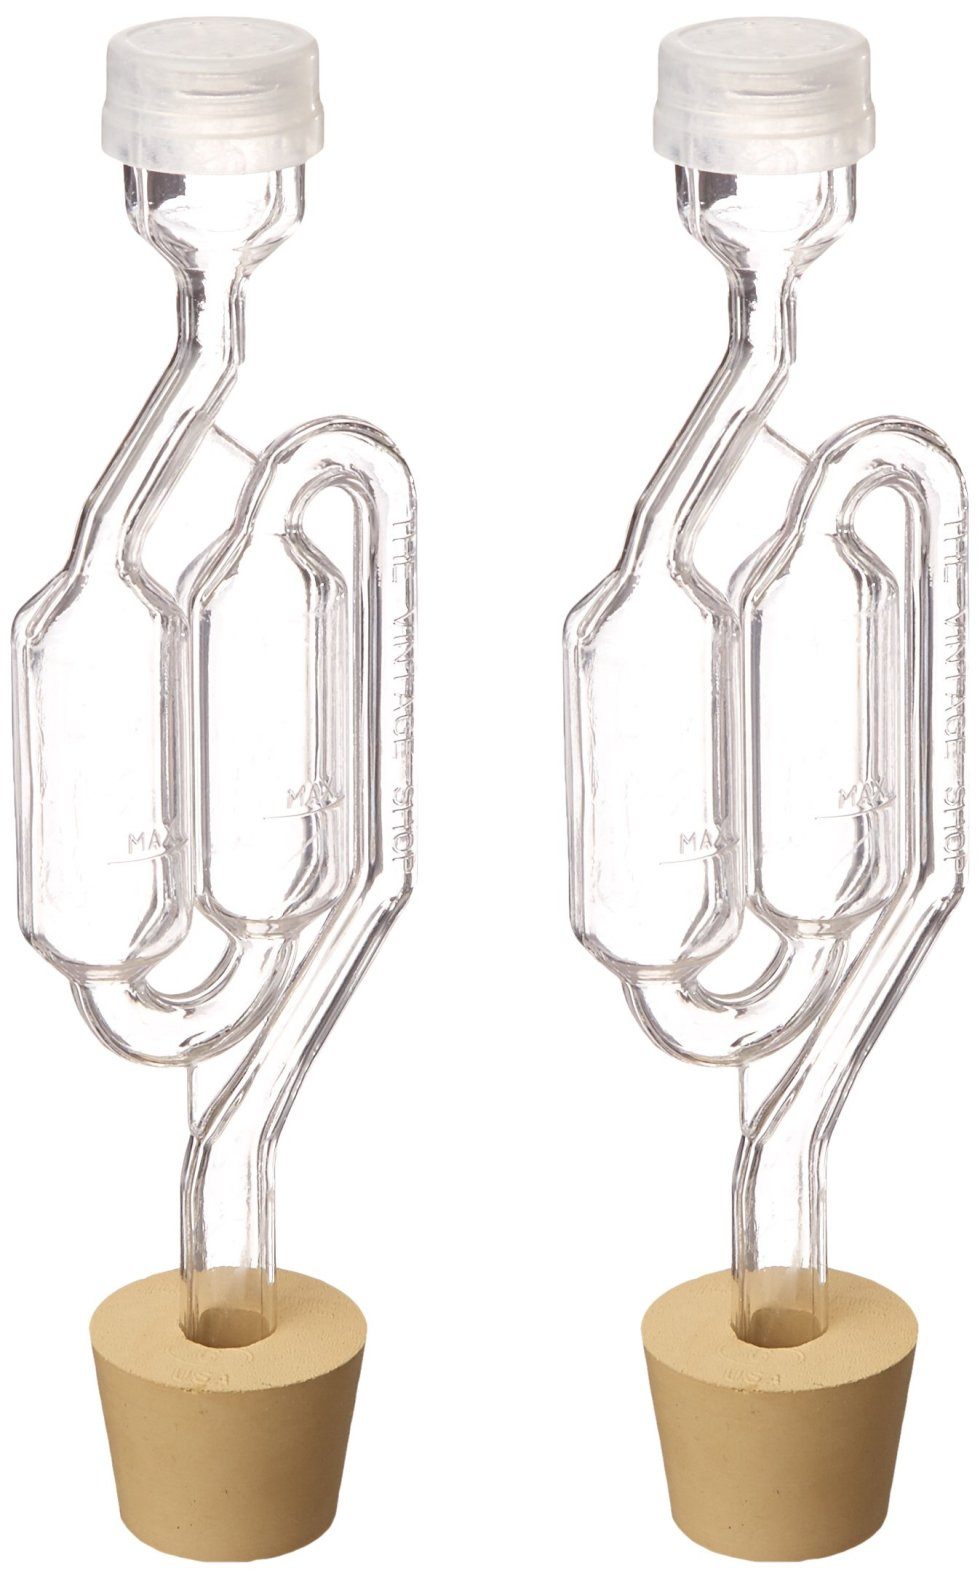 Twin Wine/Beer Home Brew Making Bubble Airlock and Carboy Bung (Pack of 2)